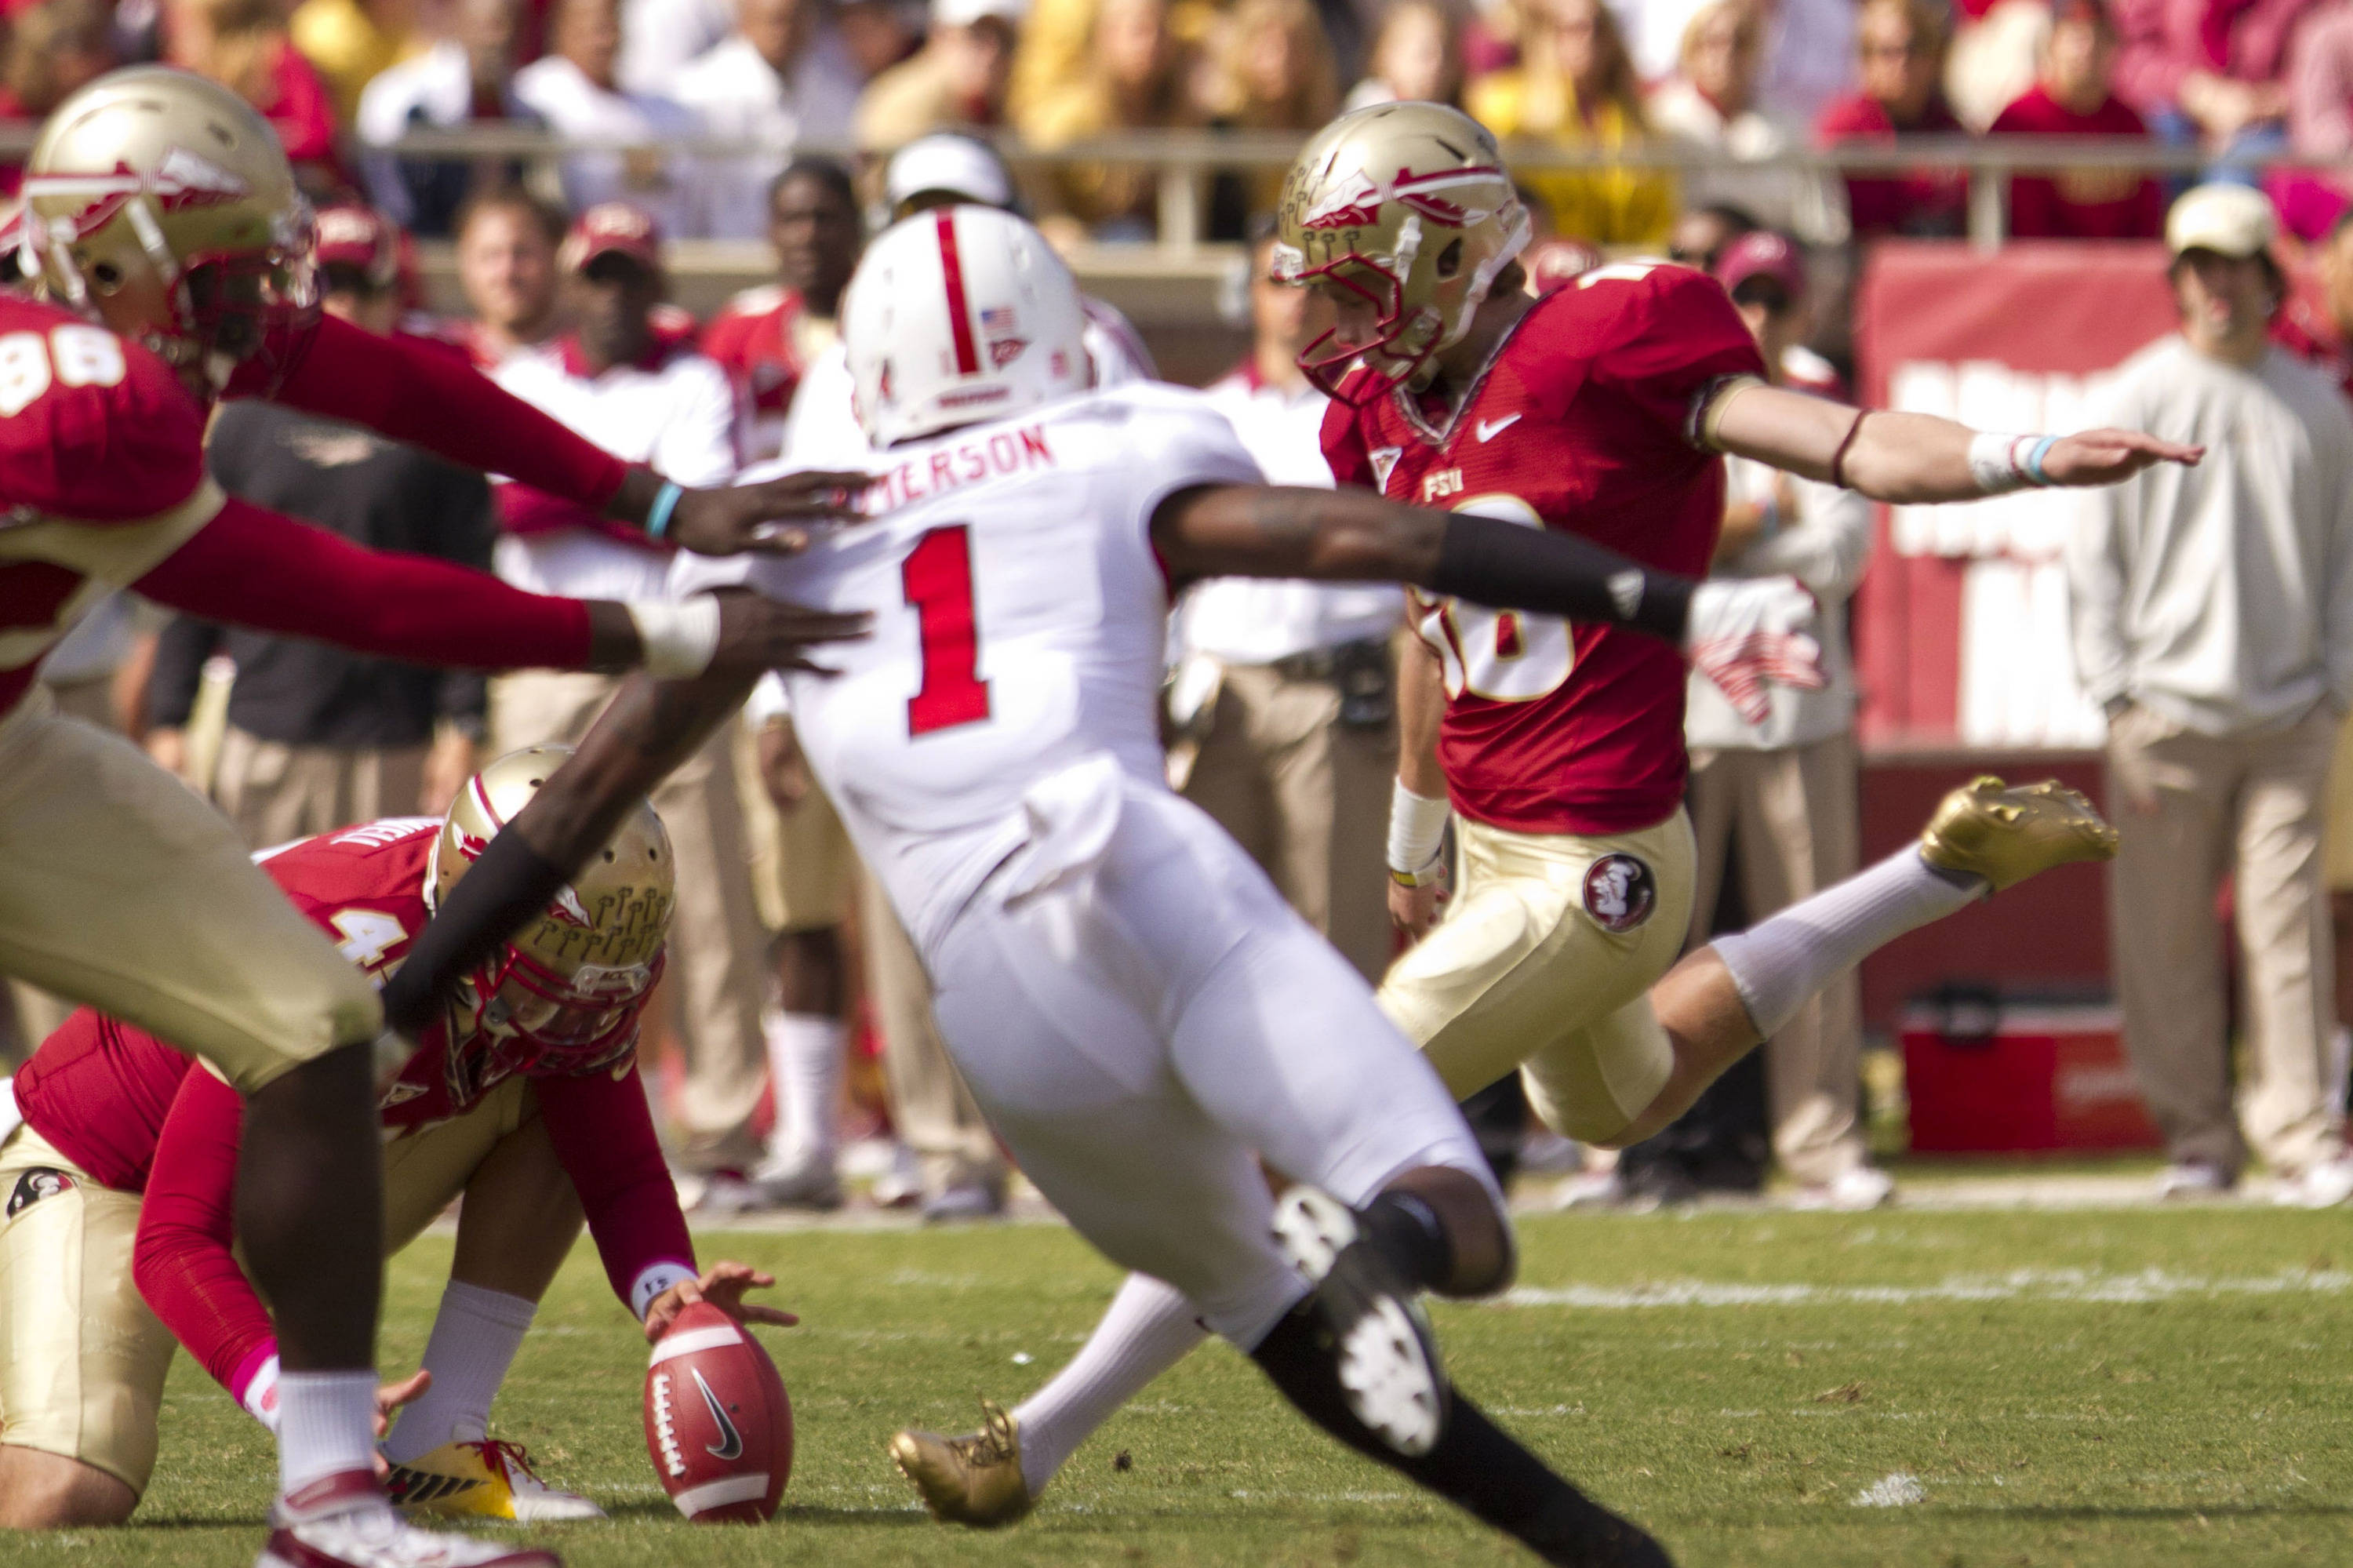 Dustin Hopkins (18) takes a kick during the football game against NC State on October 29, 2011.